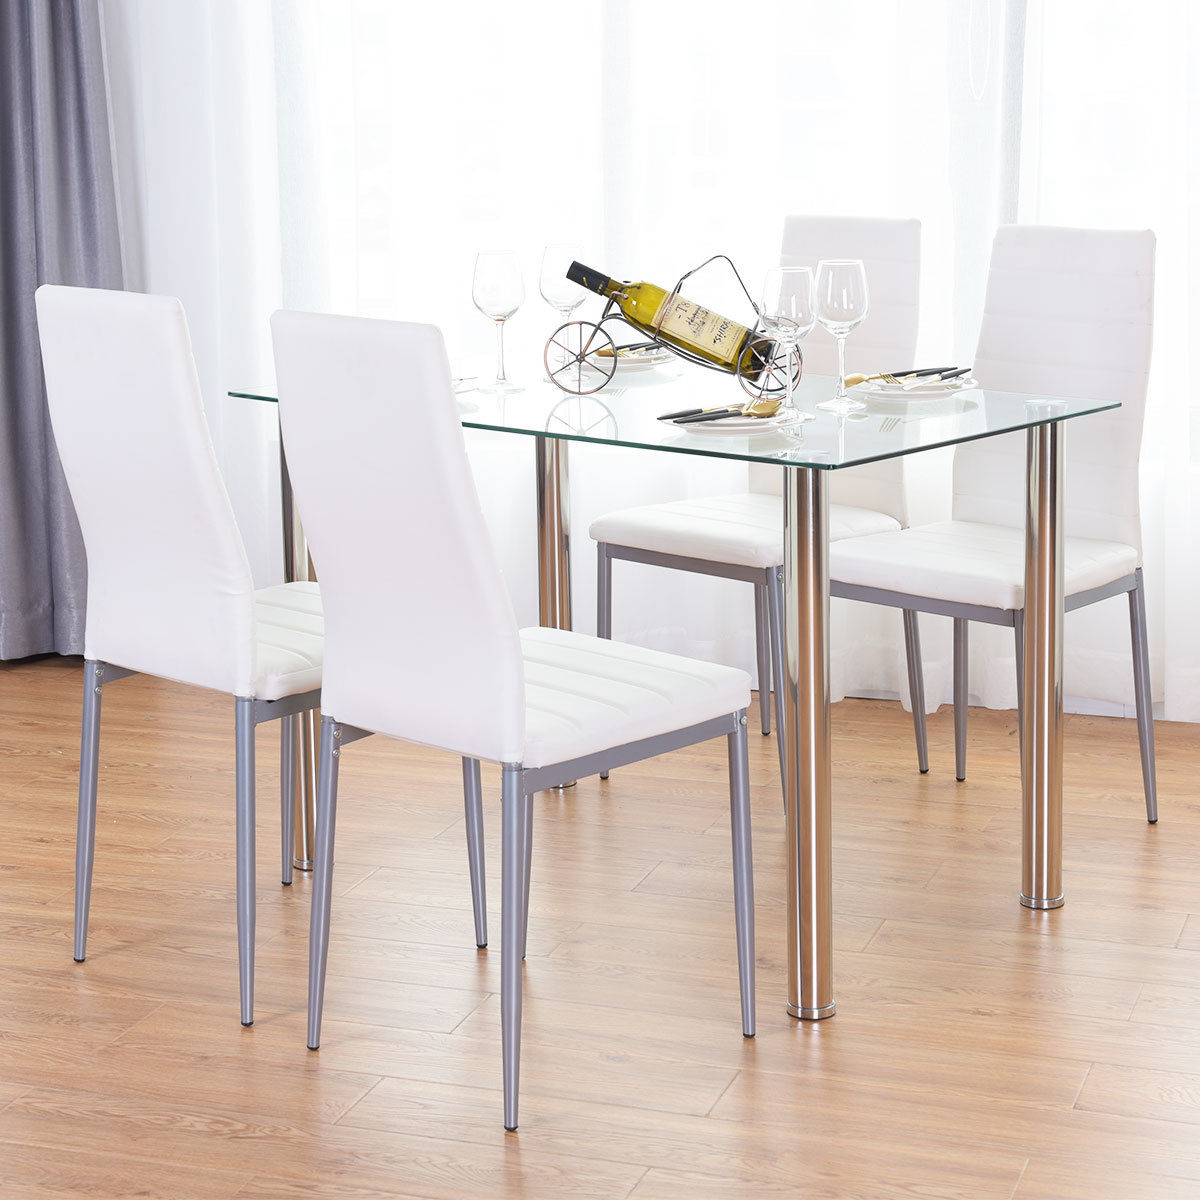 Costway 5 Piece Dining Set Table and 4 Chairs Glass Metal Kitchen Breakfast Furniture & Breakfast Nook Tables